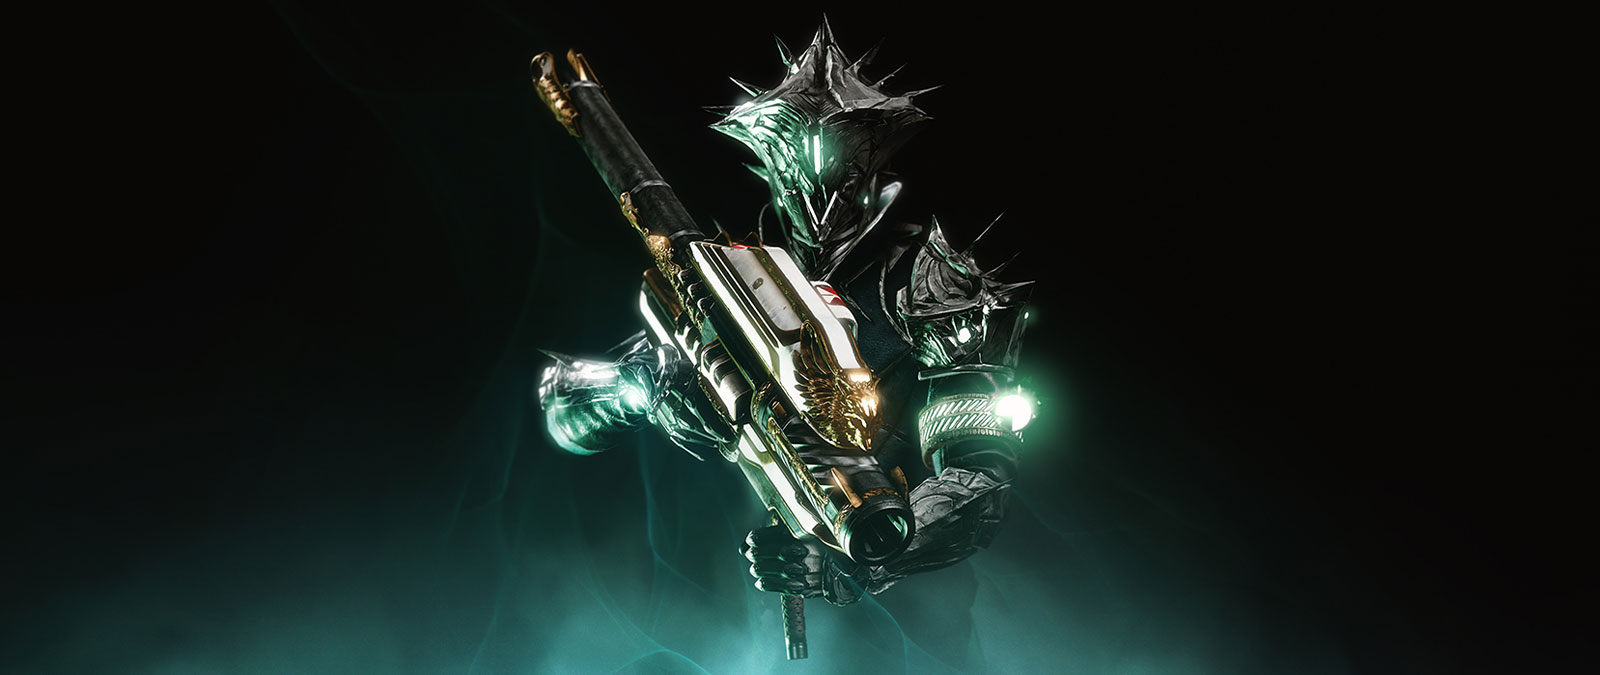 Character wearing a featured armor skin while holding a large gun